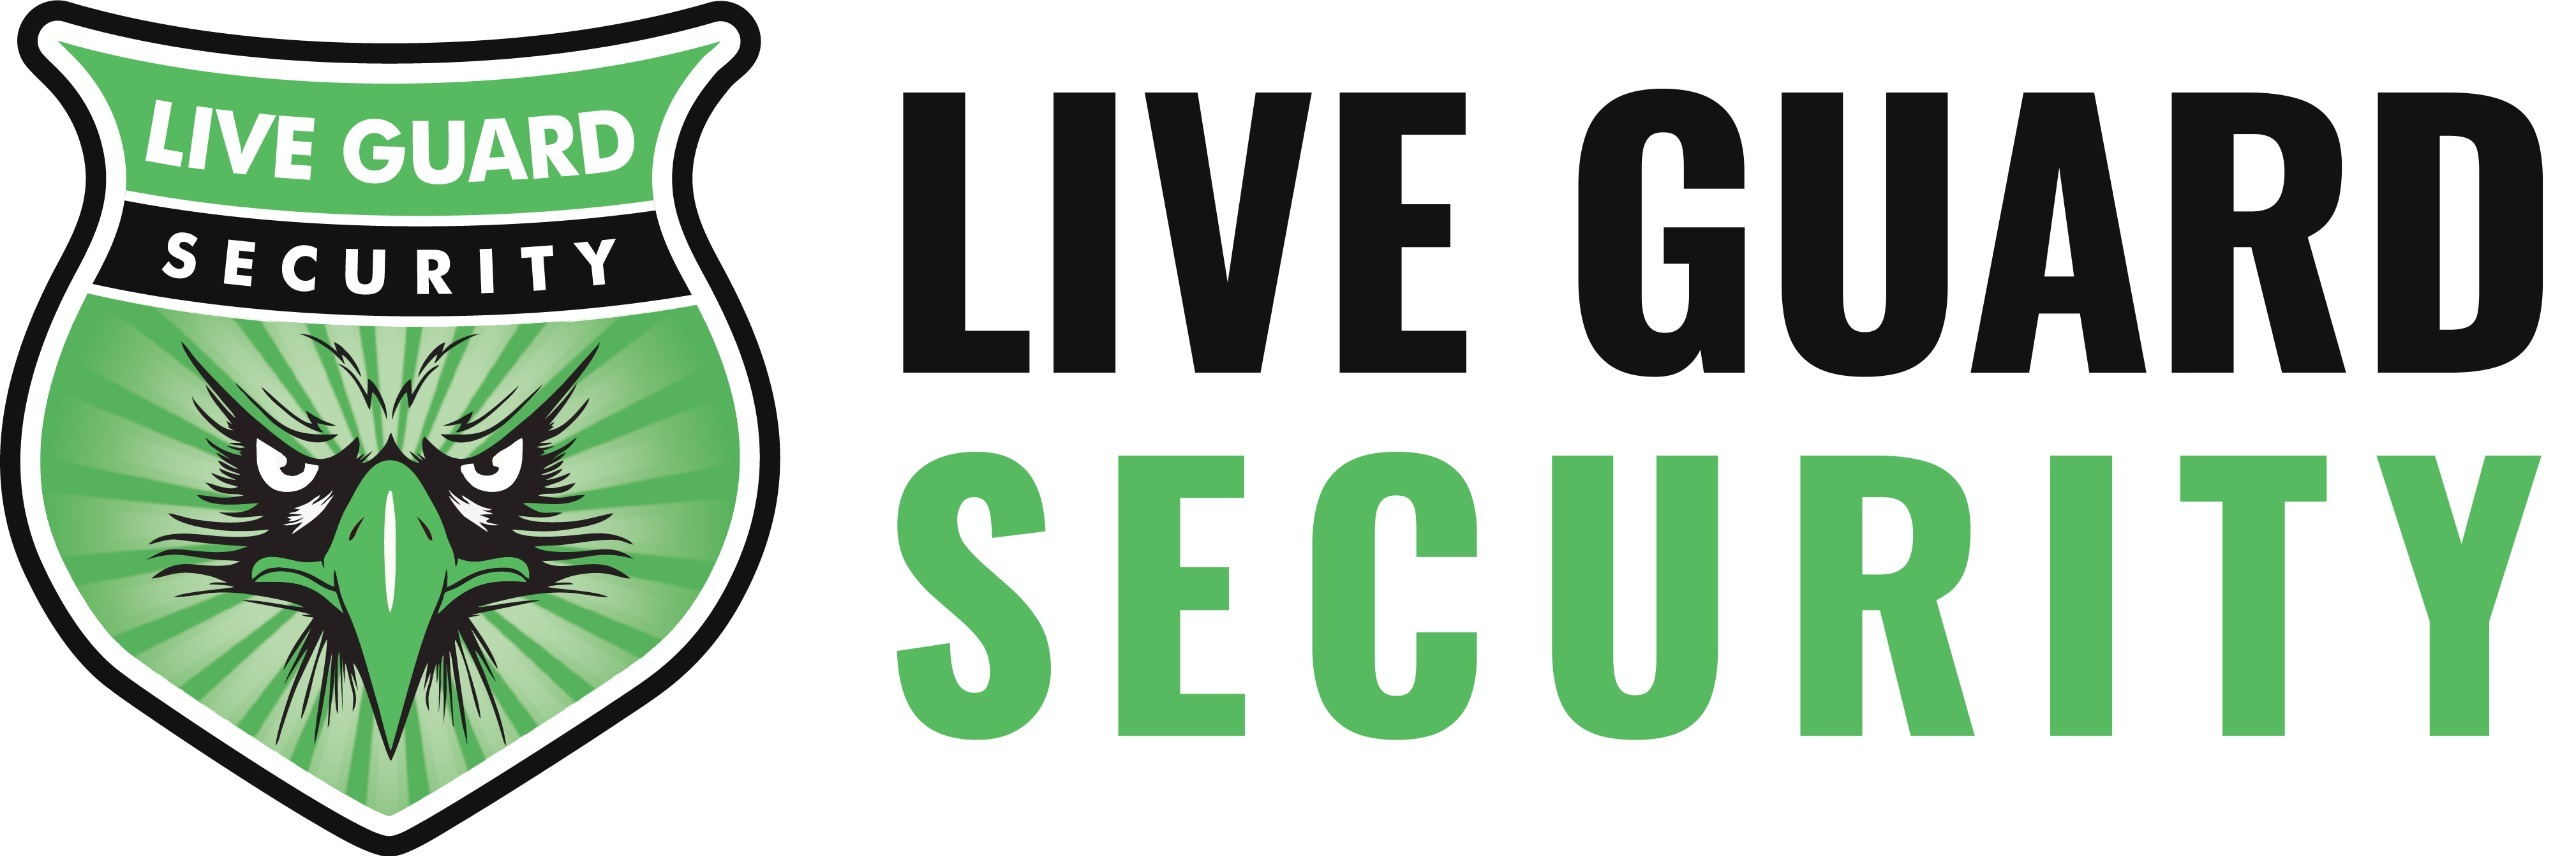 Live Guard ecurity (@liveguardsecurity) Cover Image